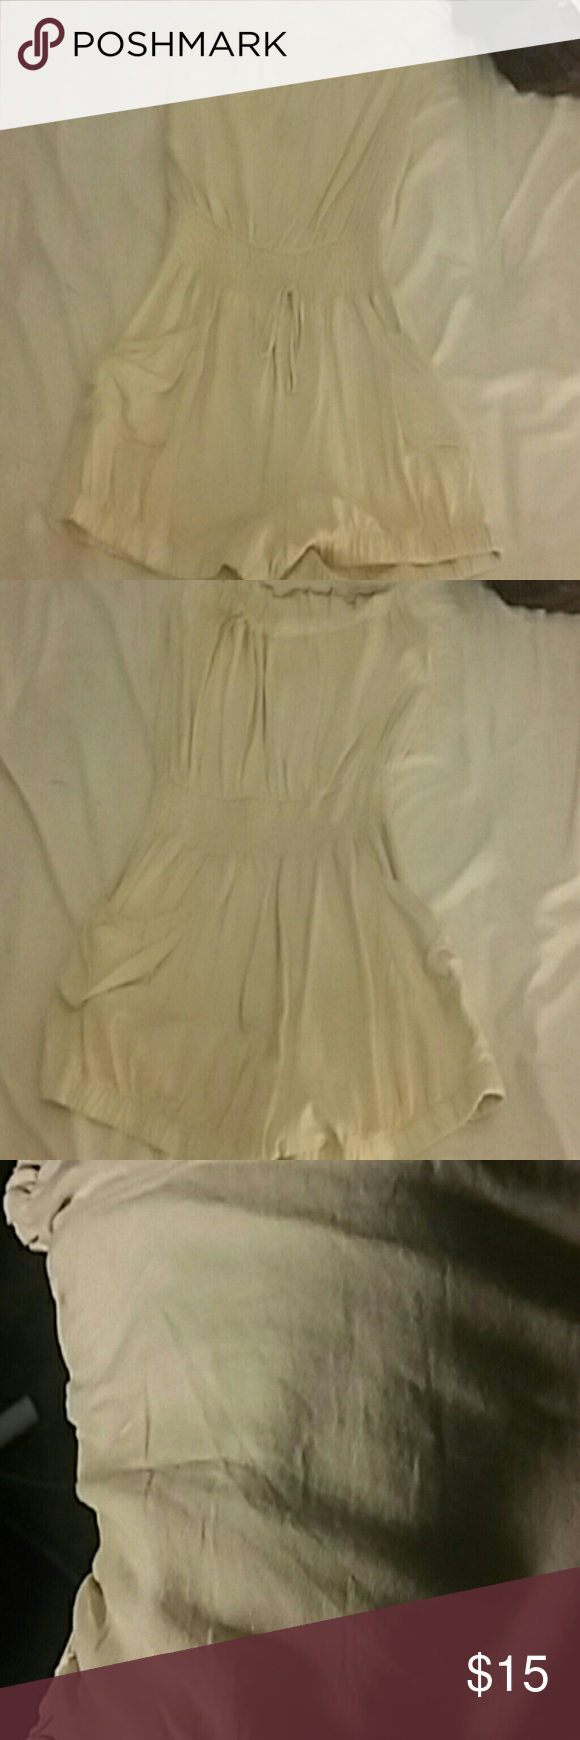 Cream Romper Strapless light cream/beige romper. With side pockets very cute Chesley Dresses